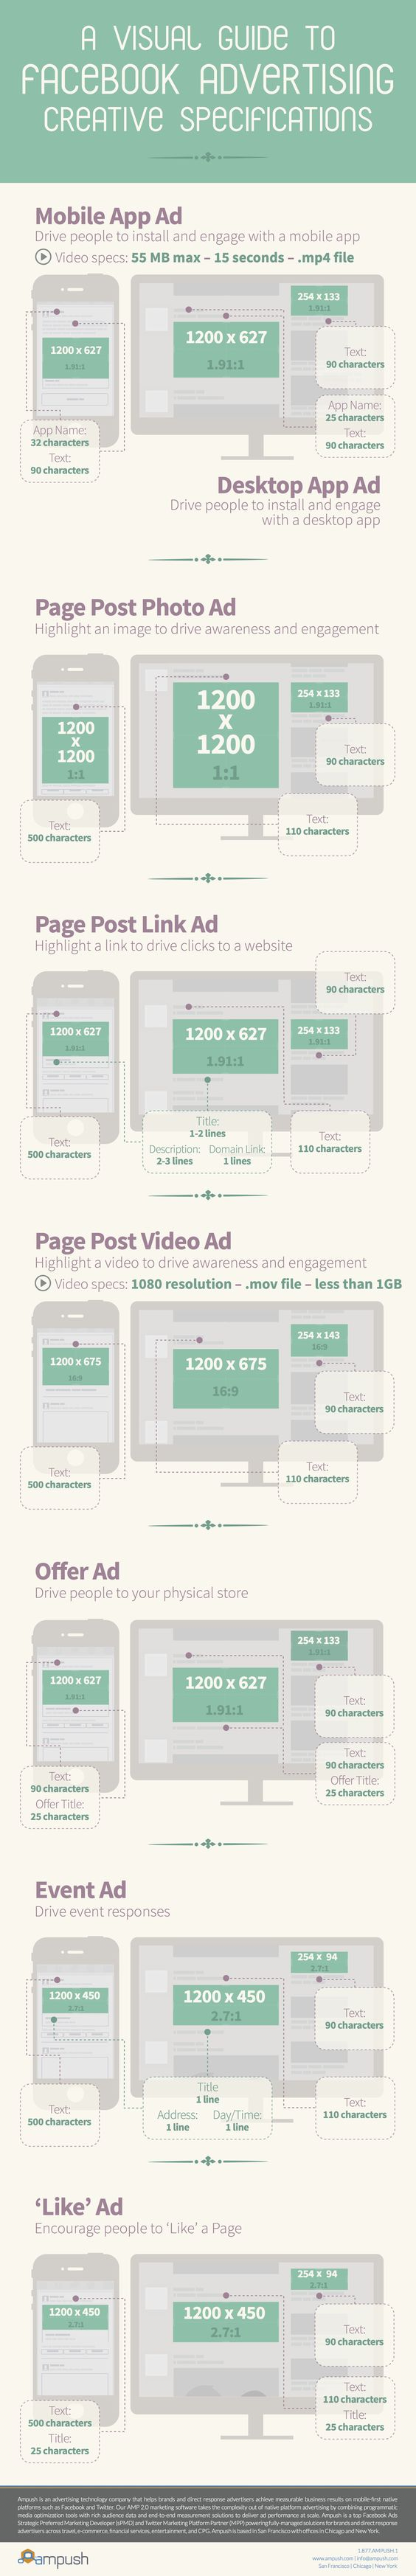 A visual guide to Facebook's ad creative specifications #infographic